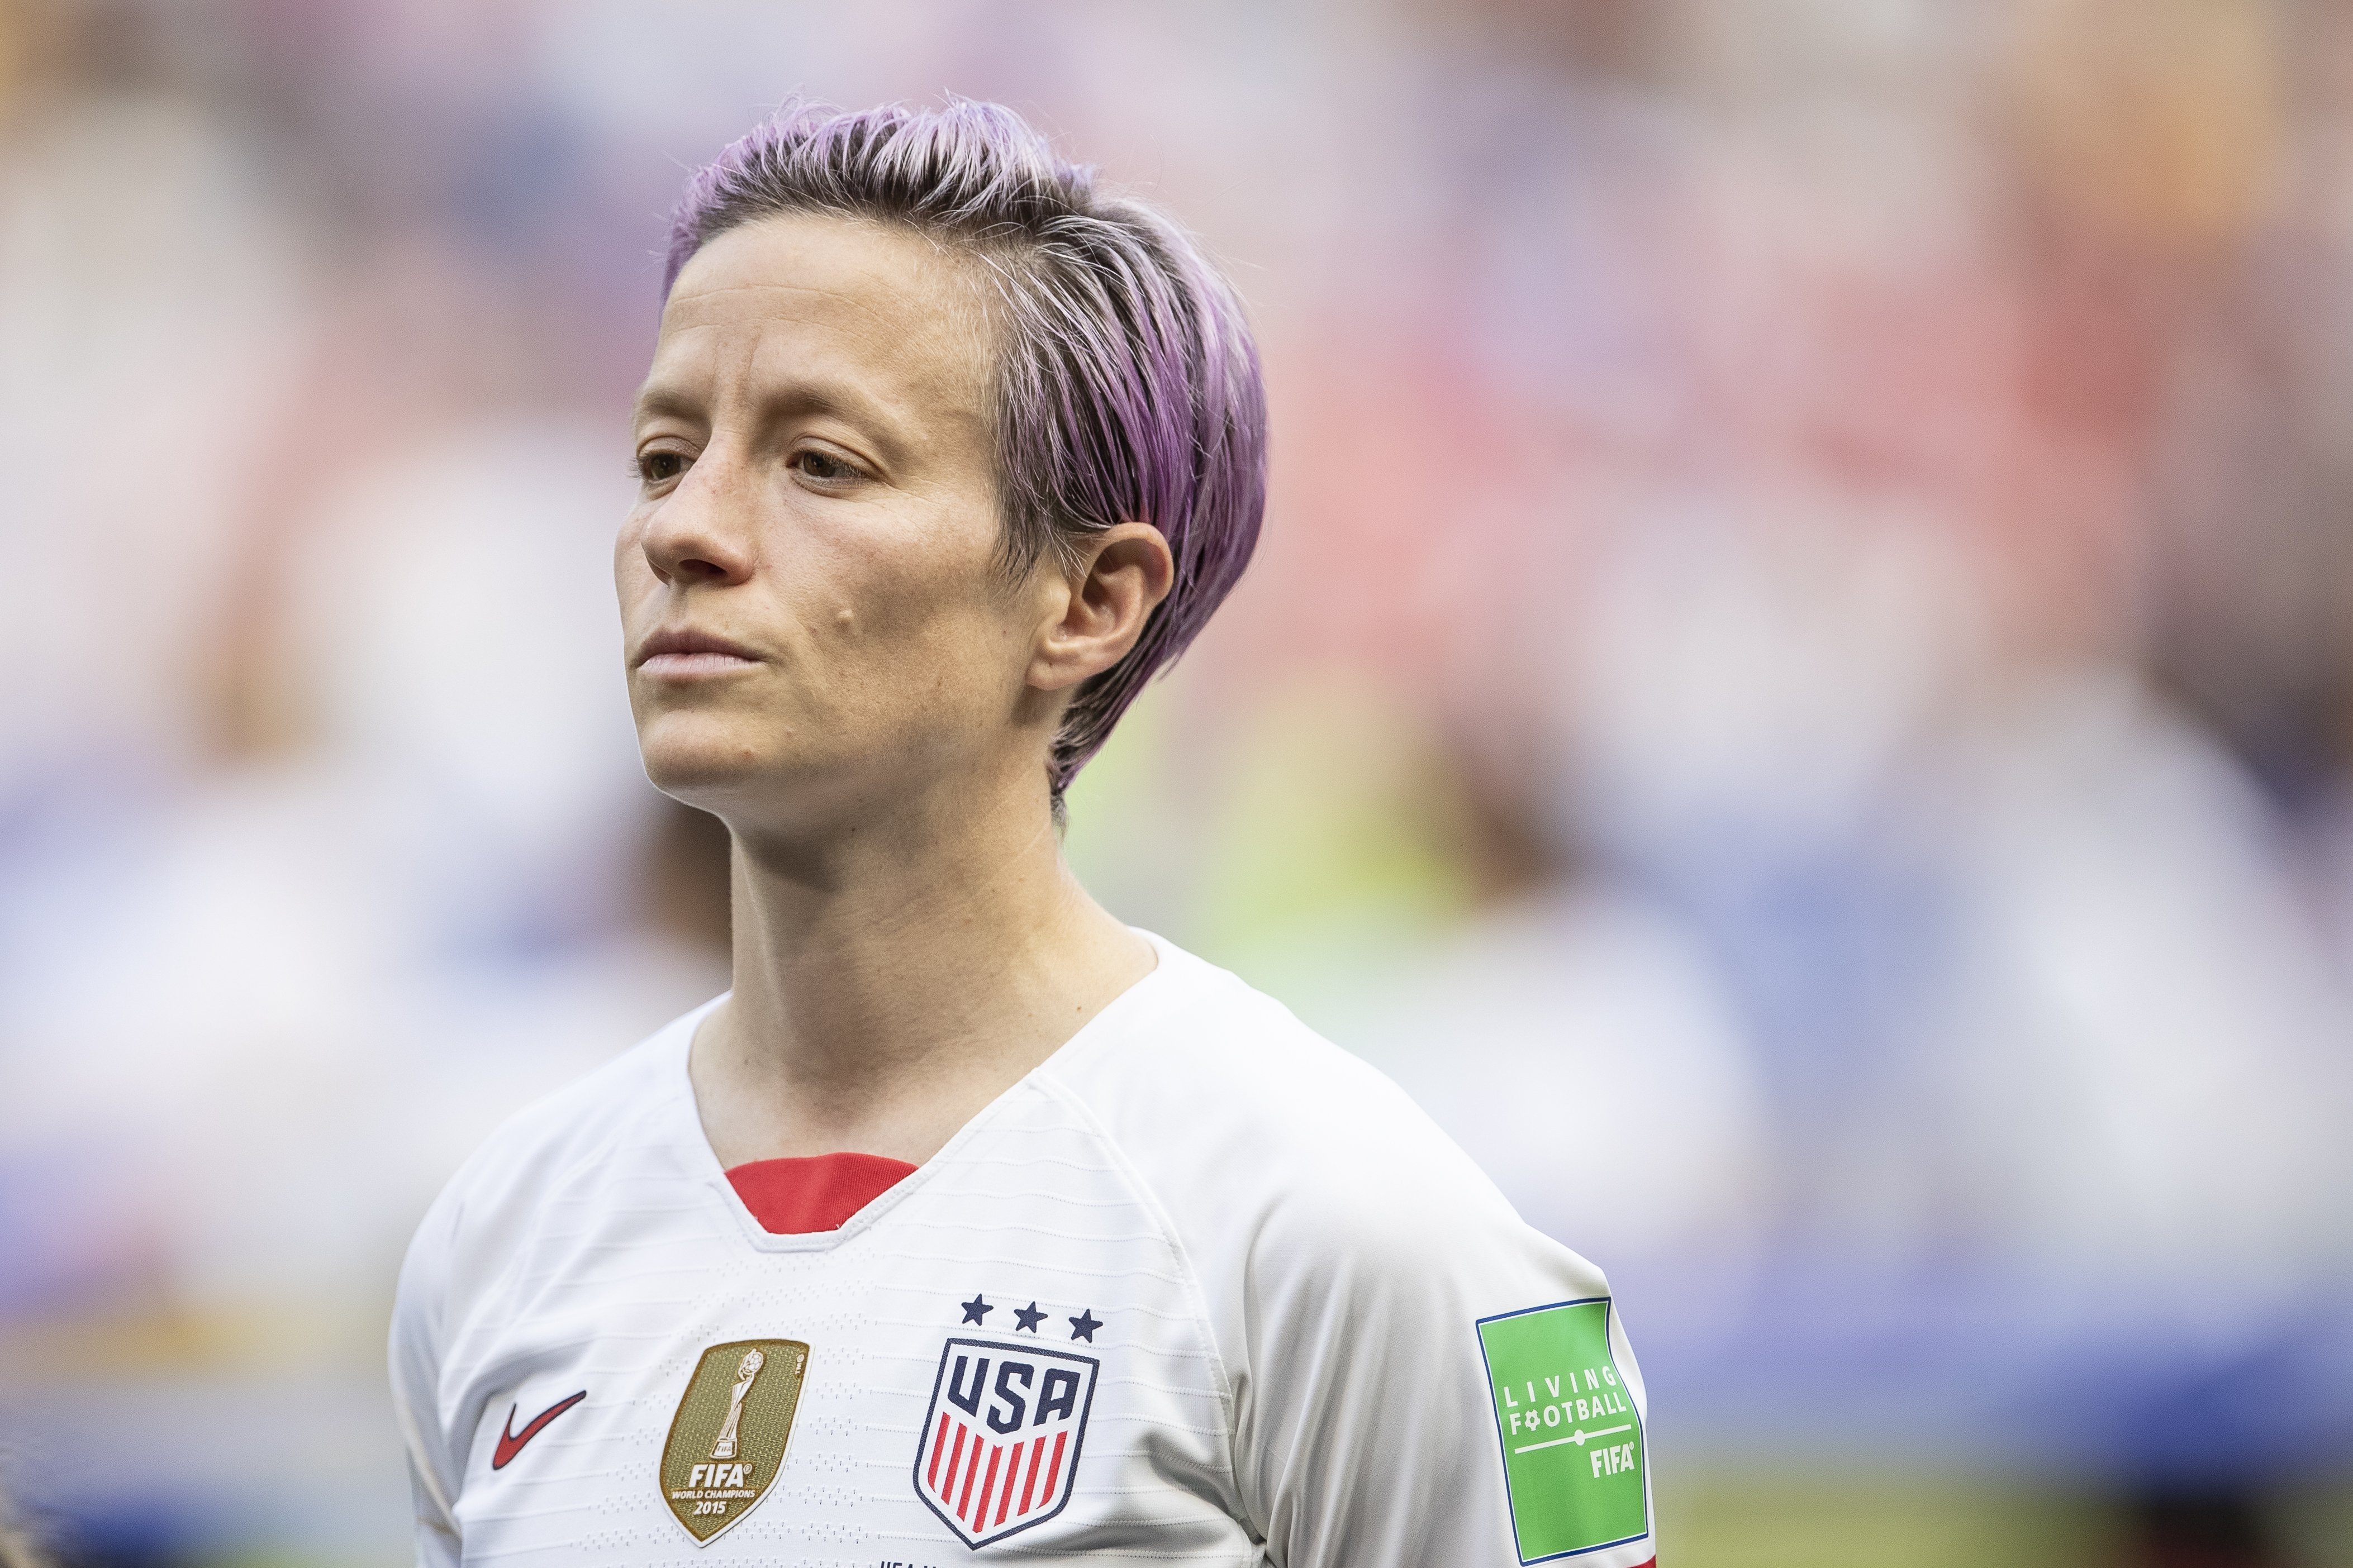 Megan Rapinoe, co-captain of the US Women's Soccer team | Photo: Getty Images